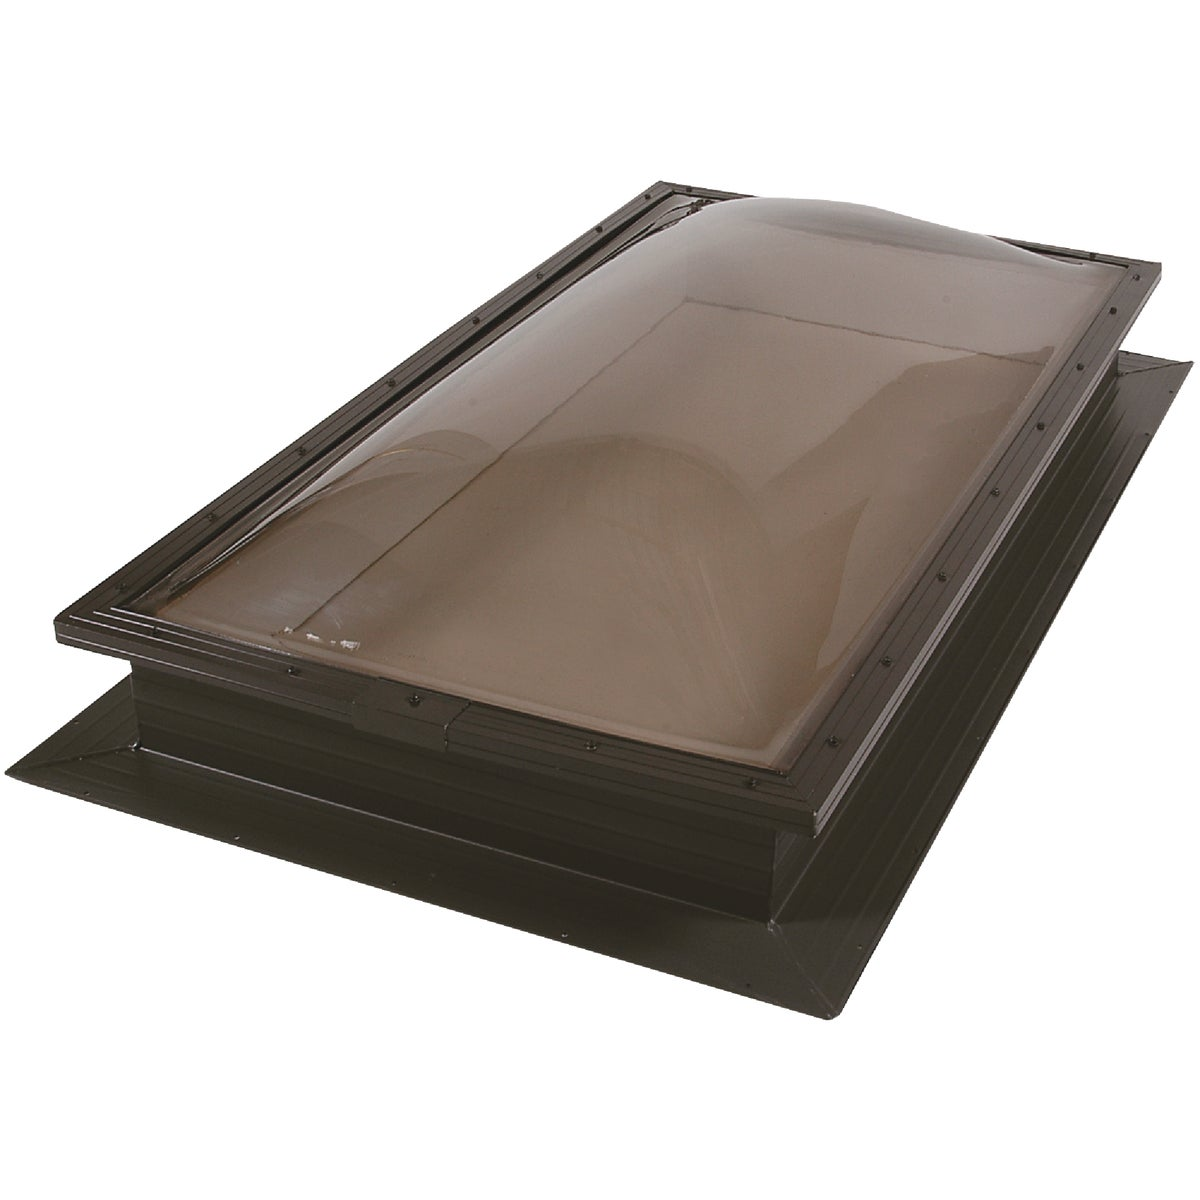 2X4 BRZ 2-DOME SKYLIGHT - HSF2246BCB by Sun Tek Manuf Inc